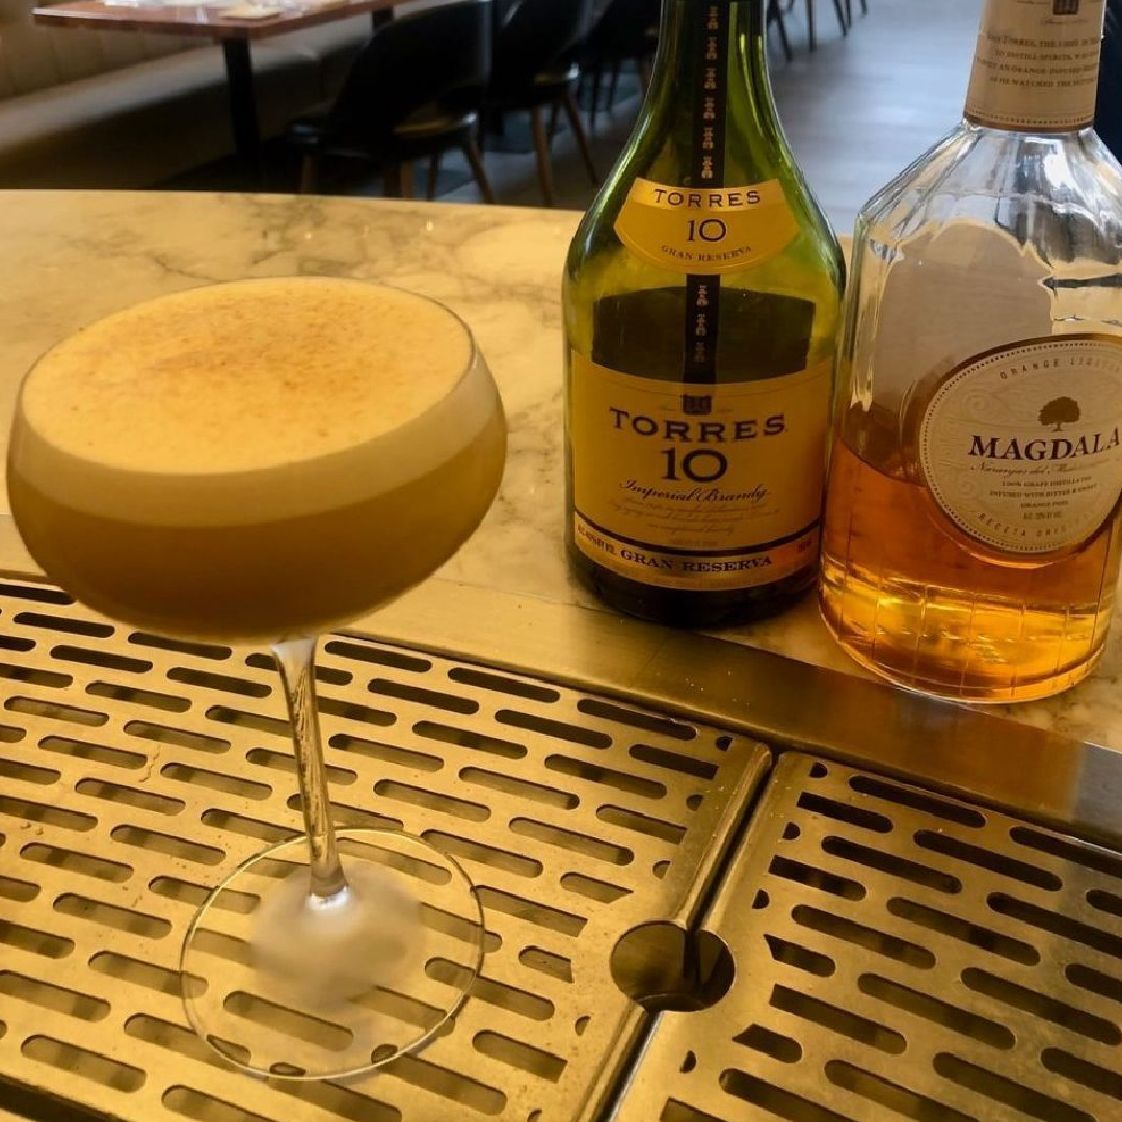 I was reading through a classic cocktail recipe book and came across a flip. I love anything egg related and really wanted to recreate a version of this adventurous and rich cocktail. After a particularly busy night at work, falling asleep can be hard, so I decided to listen to a sleep story called something like, Moroccan Nights. Needless to say, I fell asleep dreaming about delicious figs and savory spices. Side note, this also prompted the idea for the name Marrakesh Express, which is also a great song by Crosby, Stills and Nash. The Torres brandy and orange liqueur were a match made in heaven and worked along nicely with slight fruit forwardness of the fig syrup. To top it all off with a tart and effervescent Prosecco hits the spot and the nutmeg ties it all together. I found myself making believers of drinking a whole, raw egg because this drink is so damn good. And has a lot of protein to boot.  *Skin figs and blend, add equal parts sugar and water, strain.